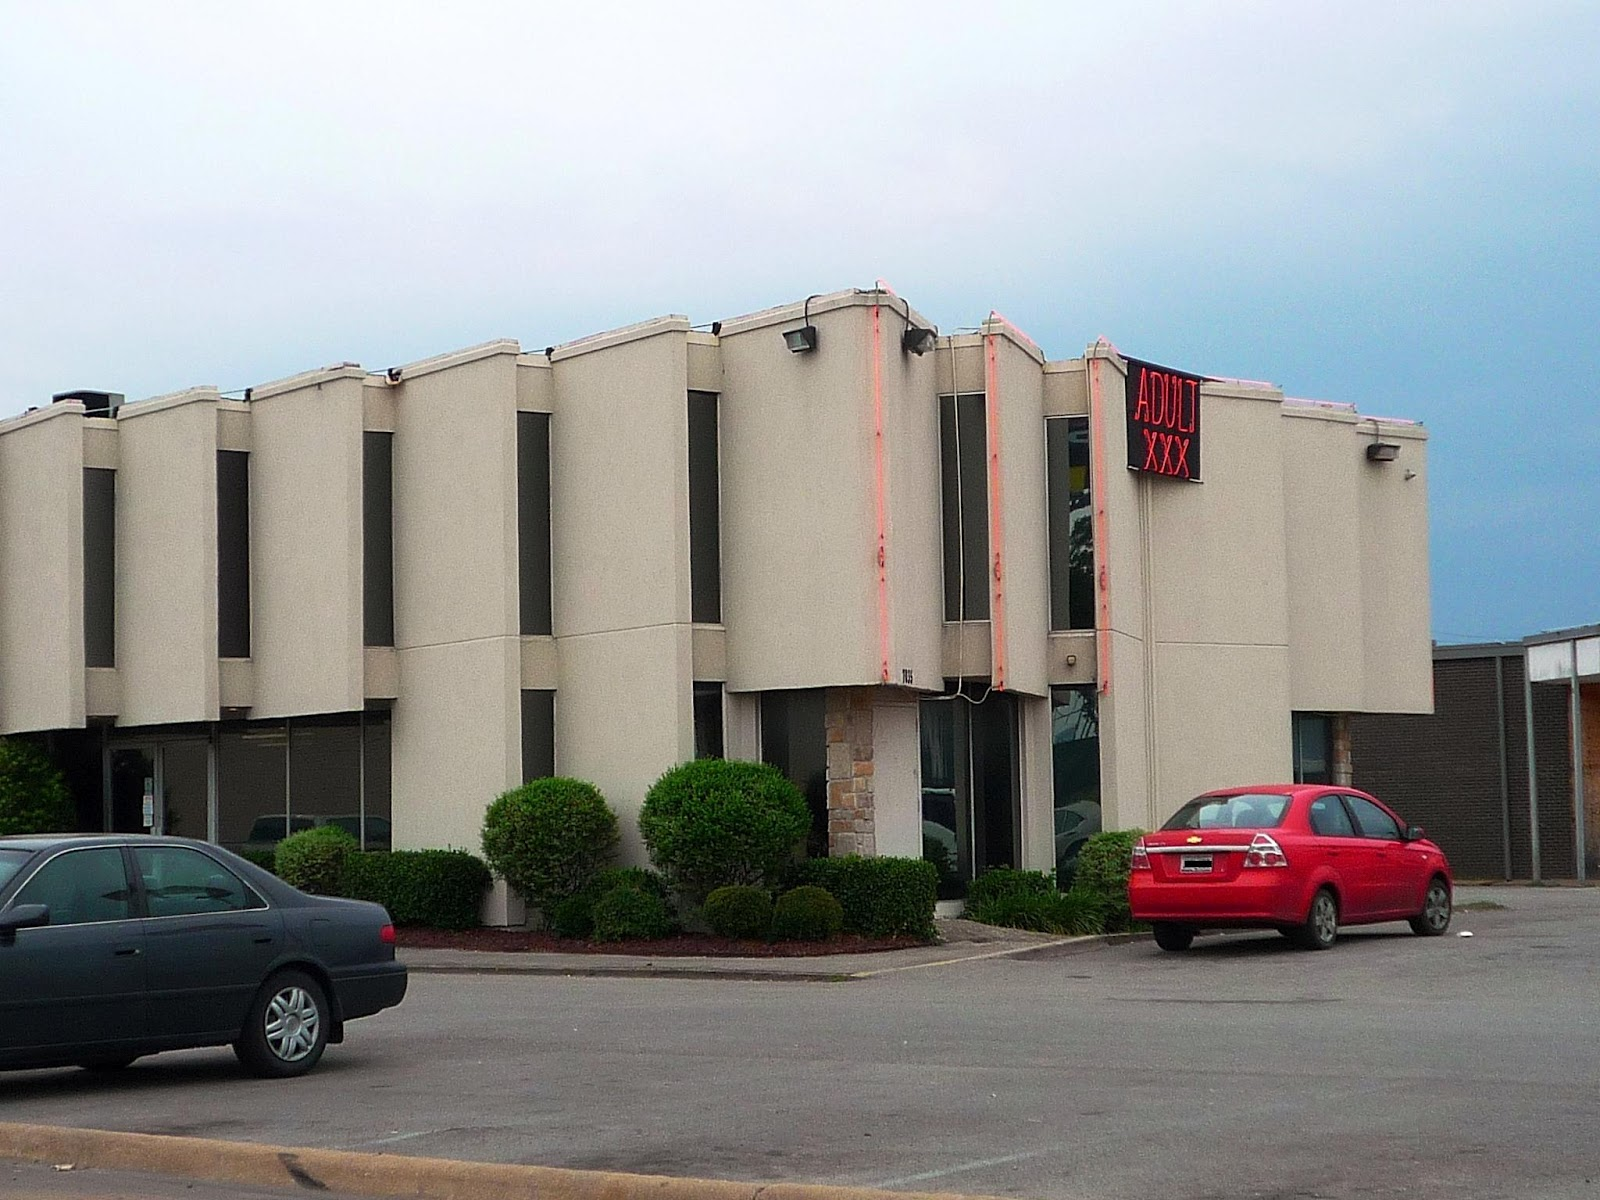 What lido adult theater